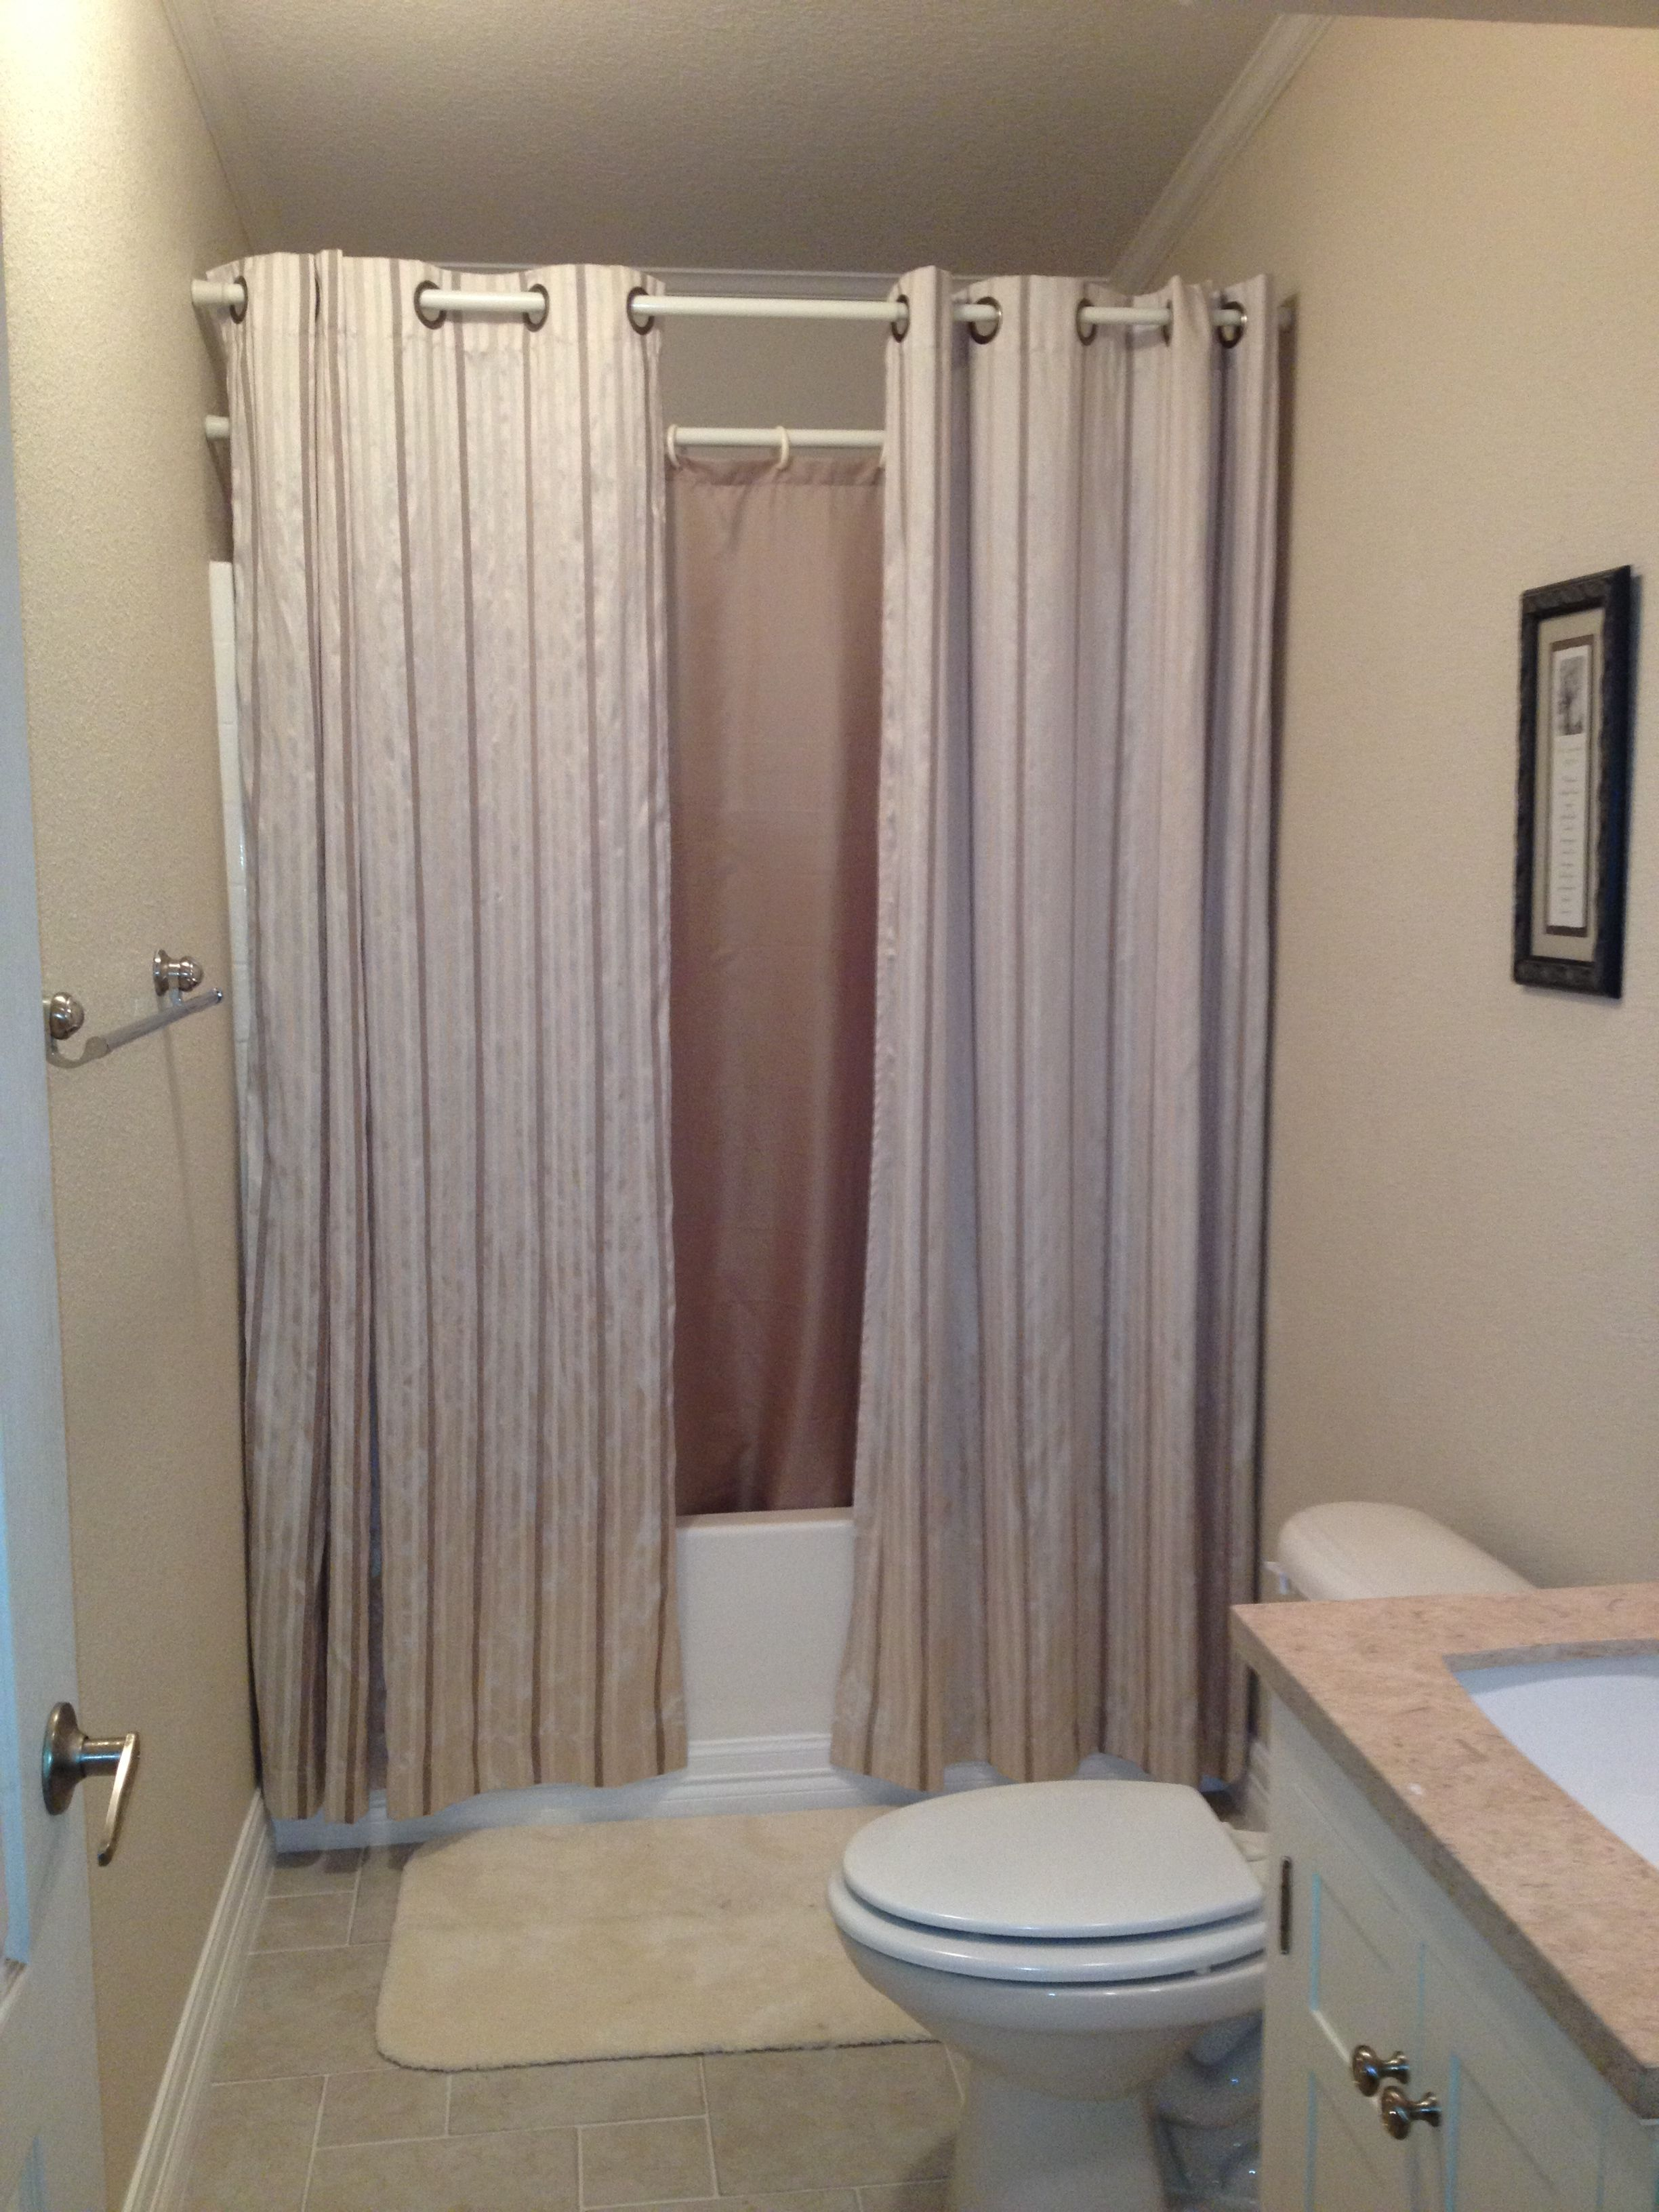 How To Make Shower Curtain Hanging Shower Curtains To Make Small Bathroom Look Bigger